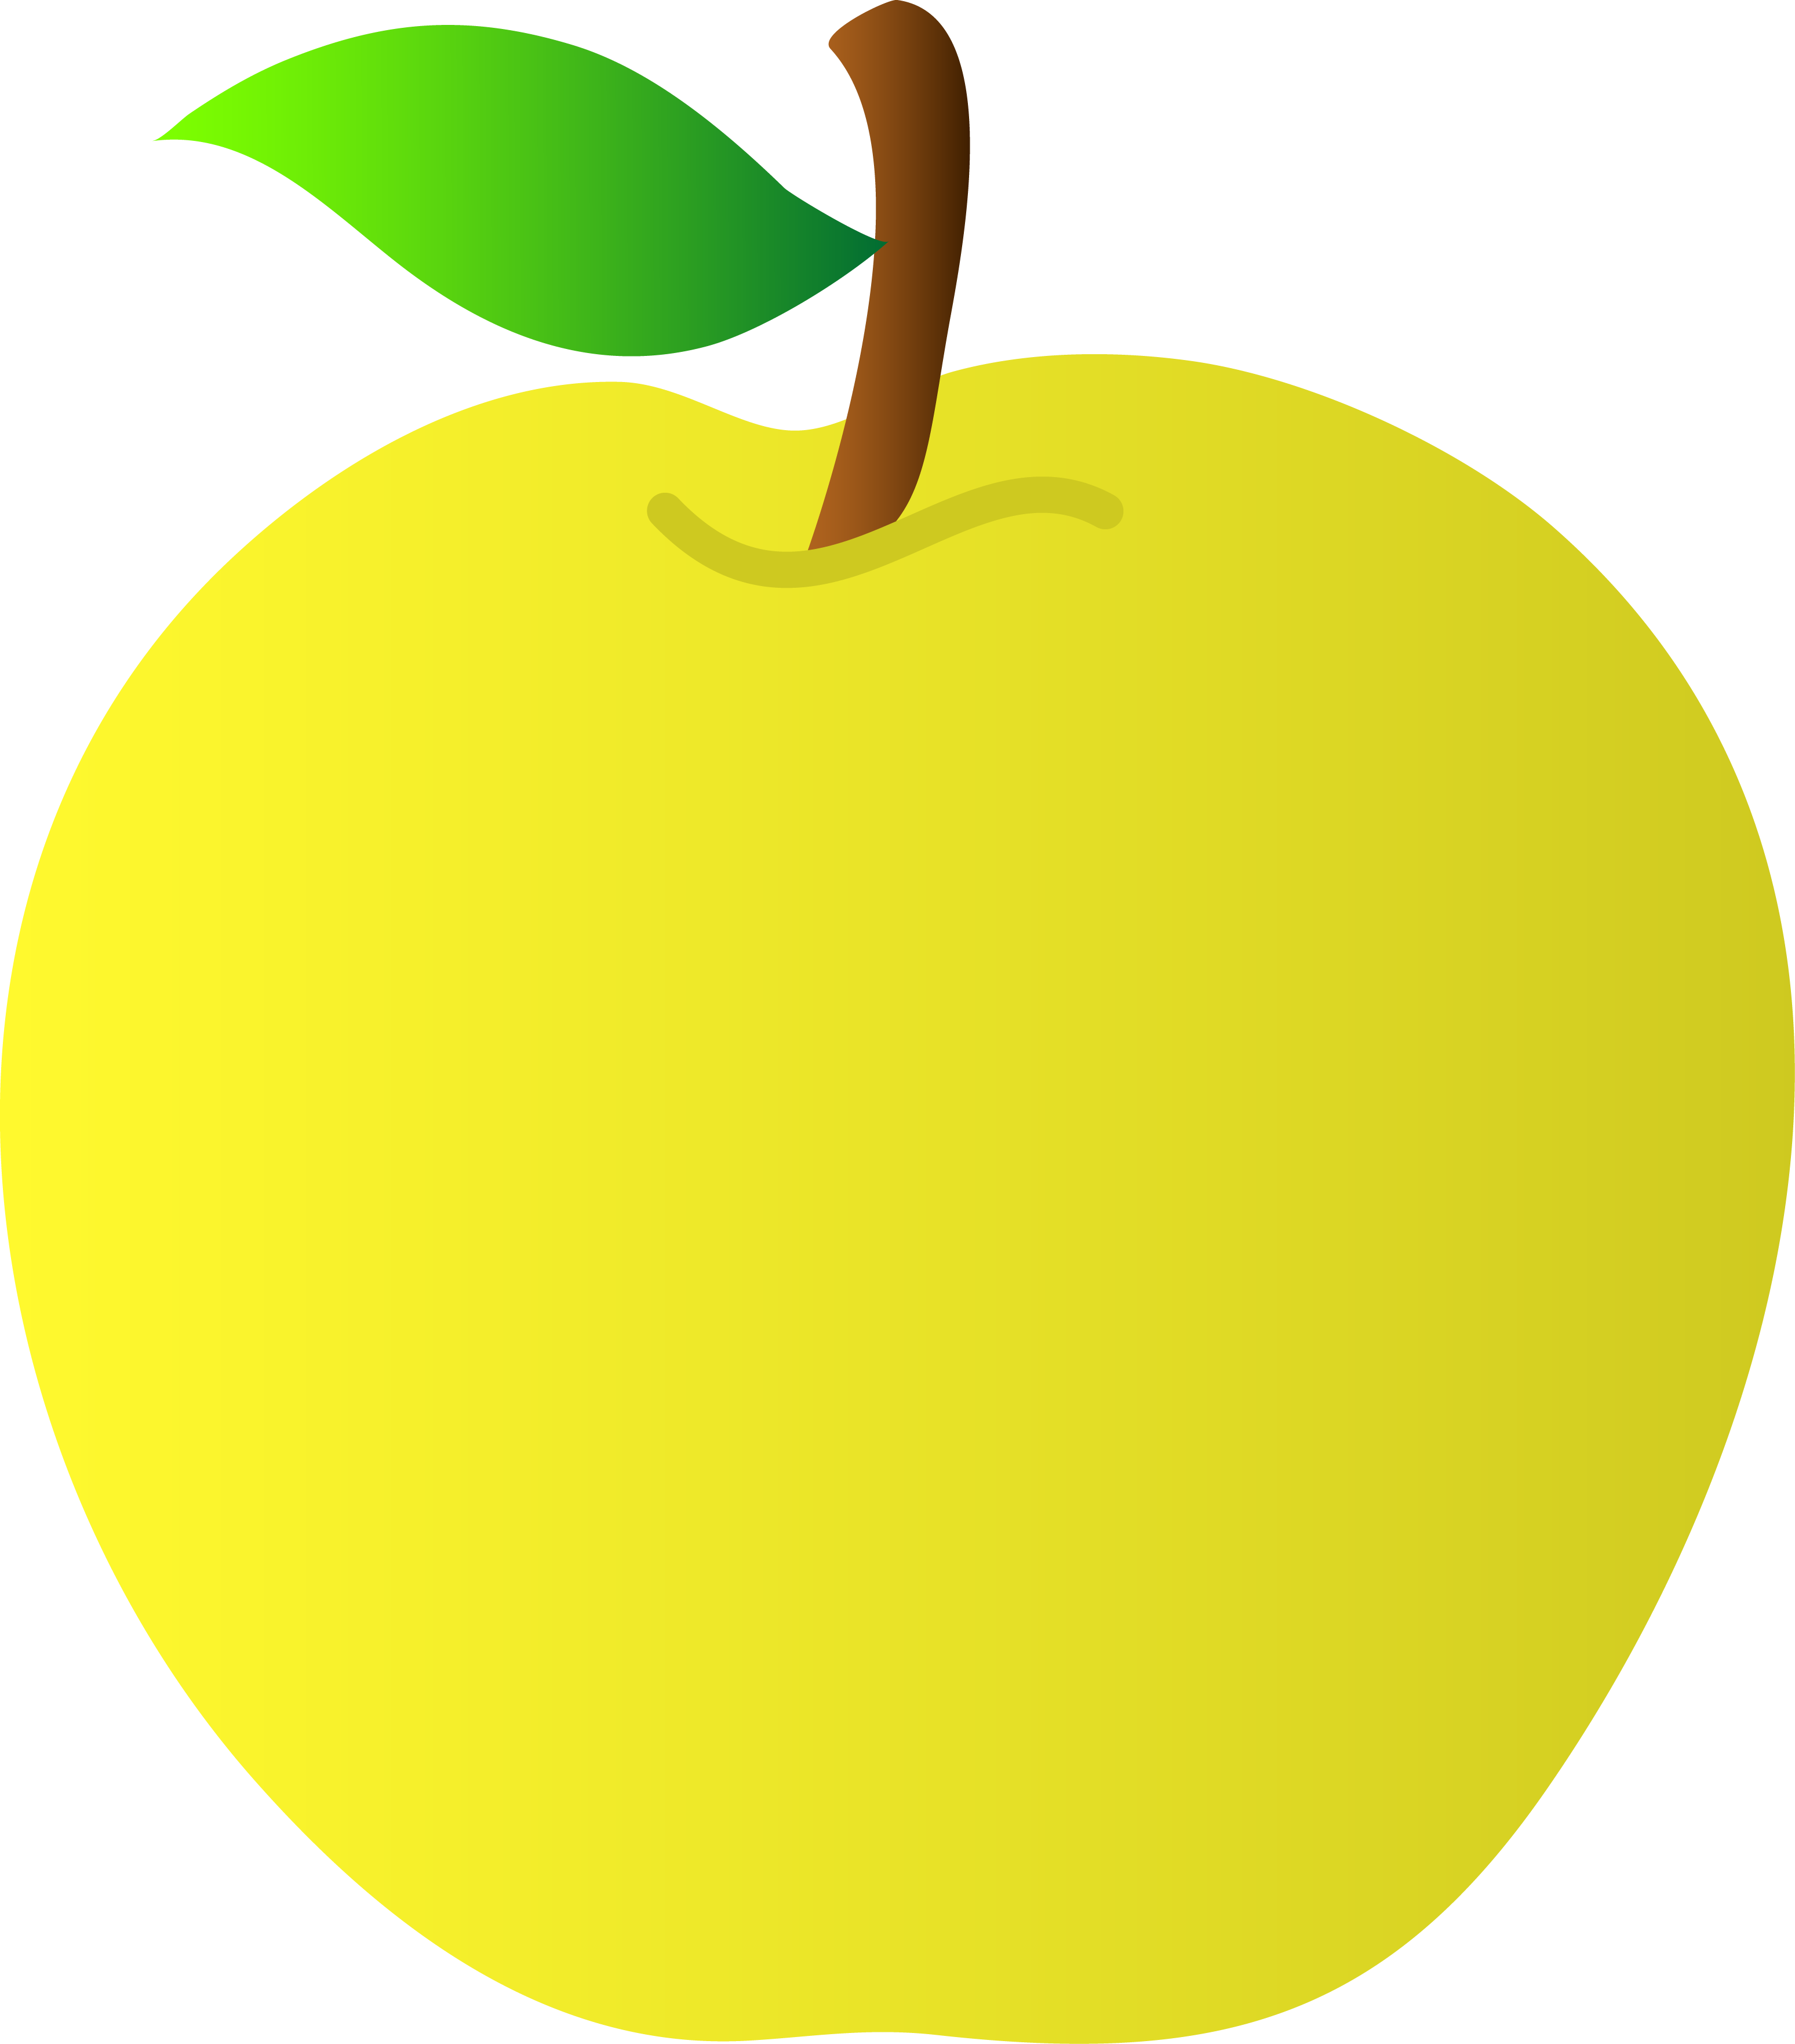 Healthy apple clipart clipart free library Yellow Apple Vector Art - Free Clip Art clipart free library